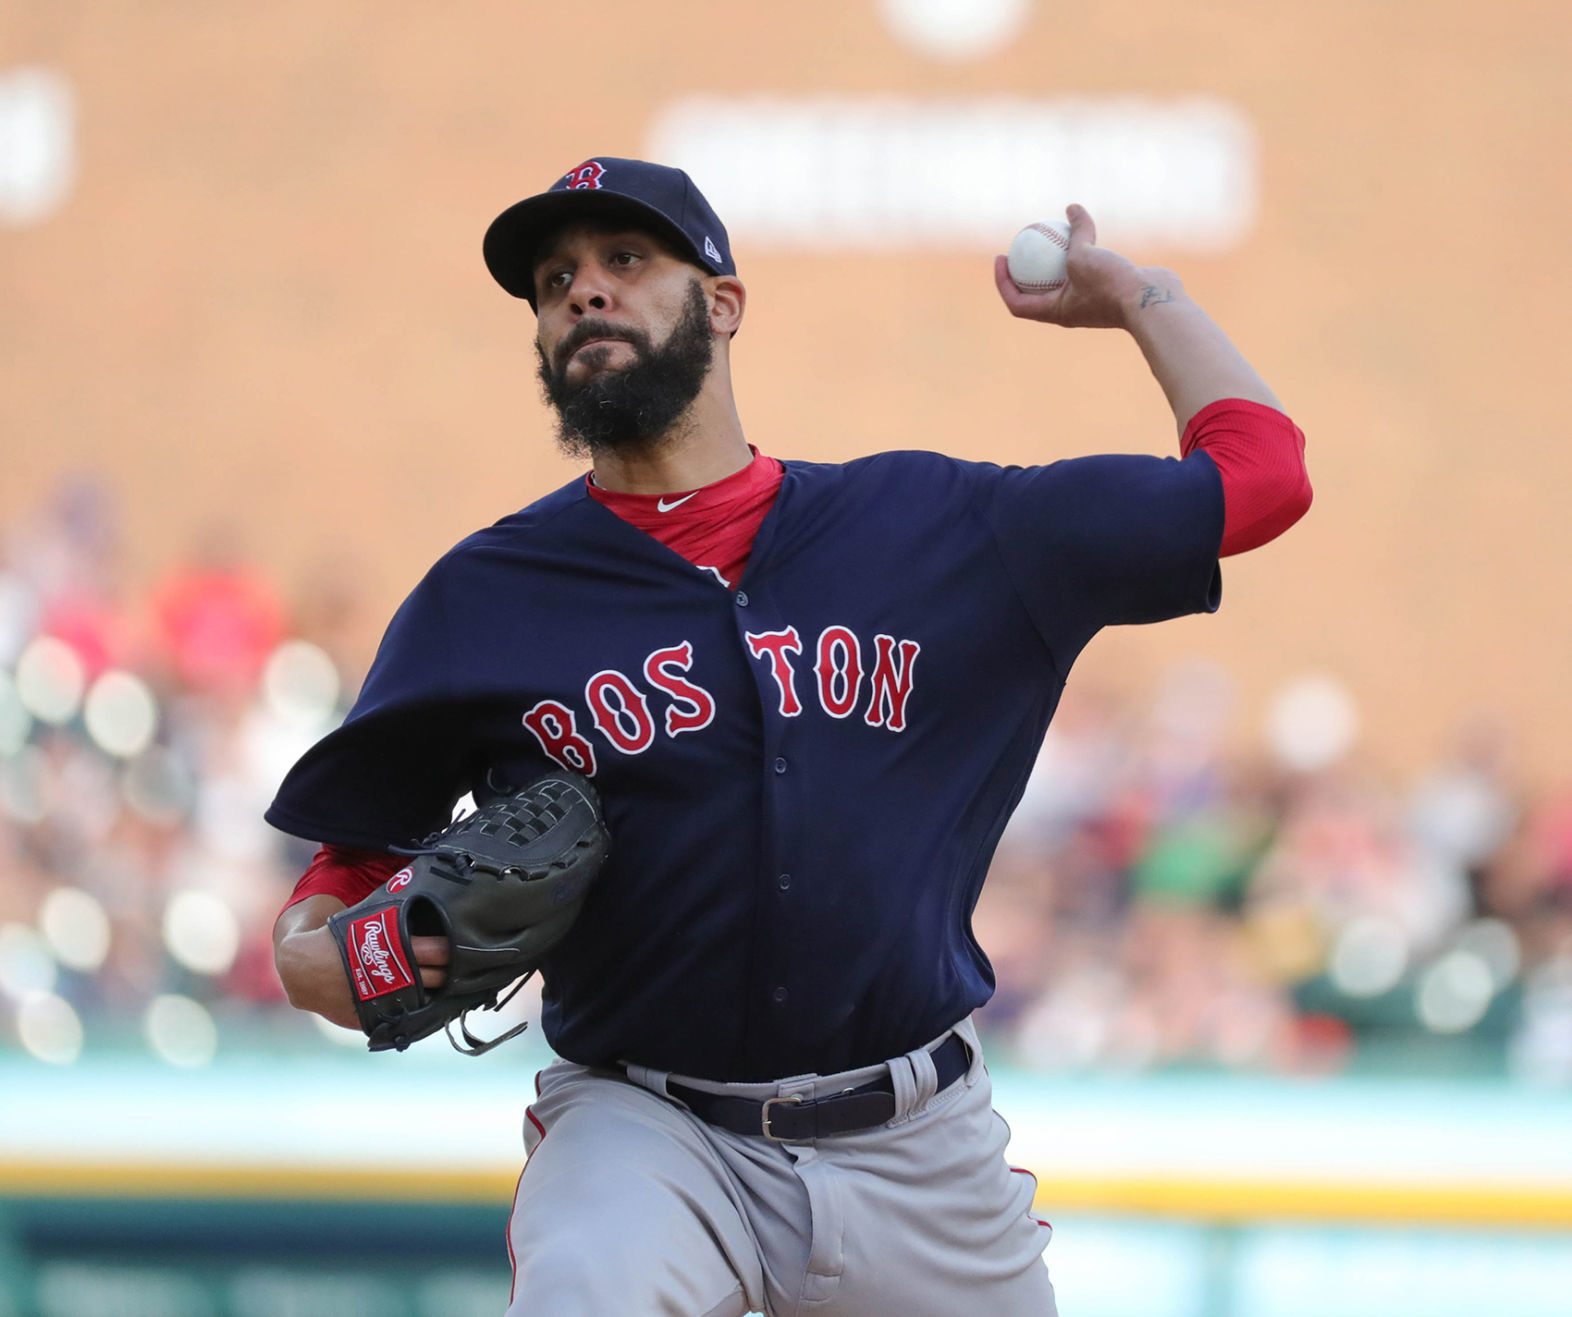 Red Sox have a few questions to